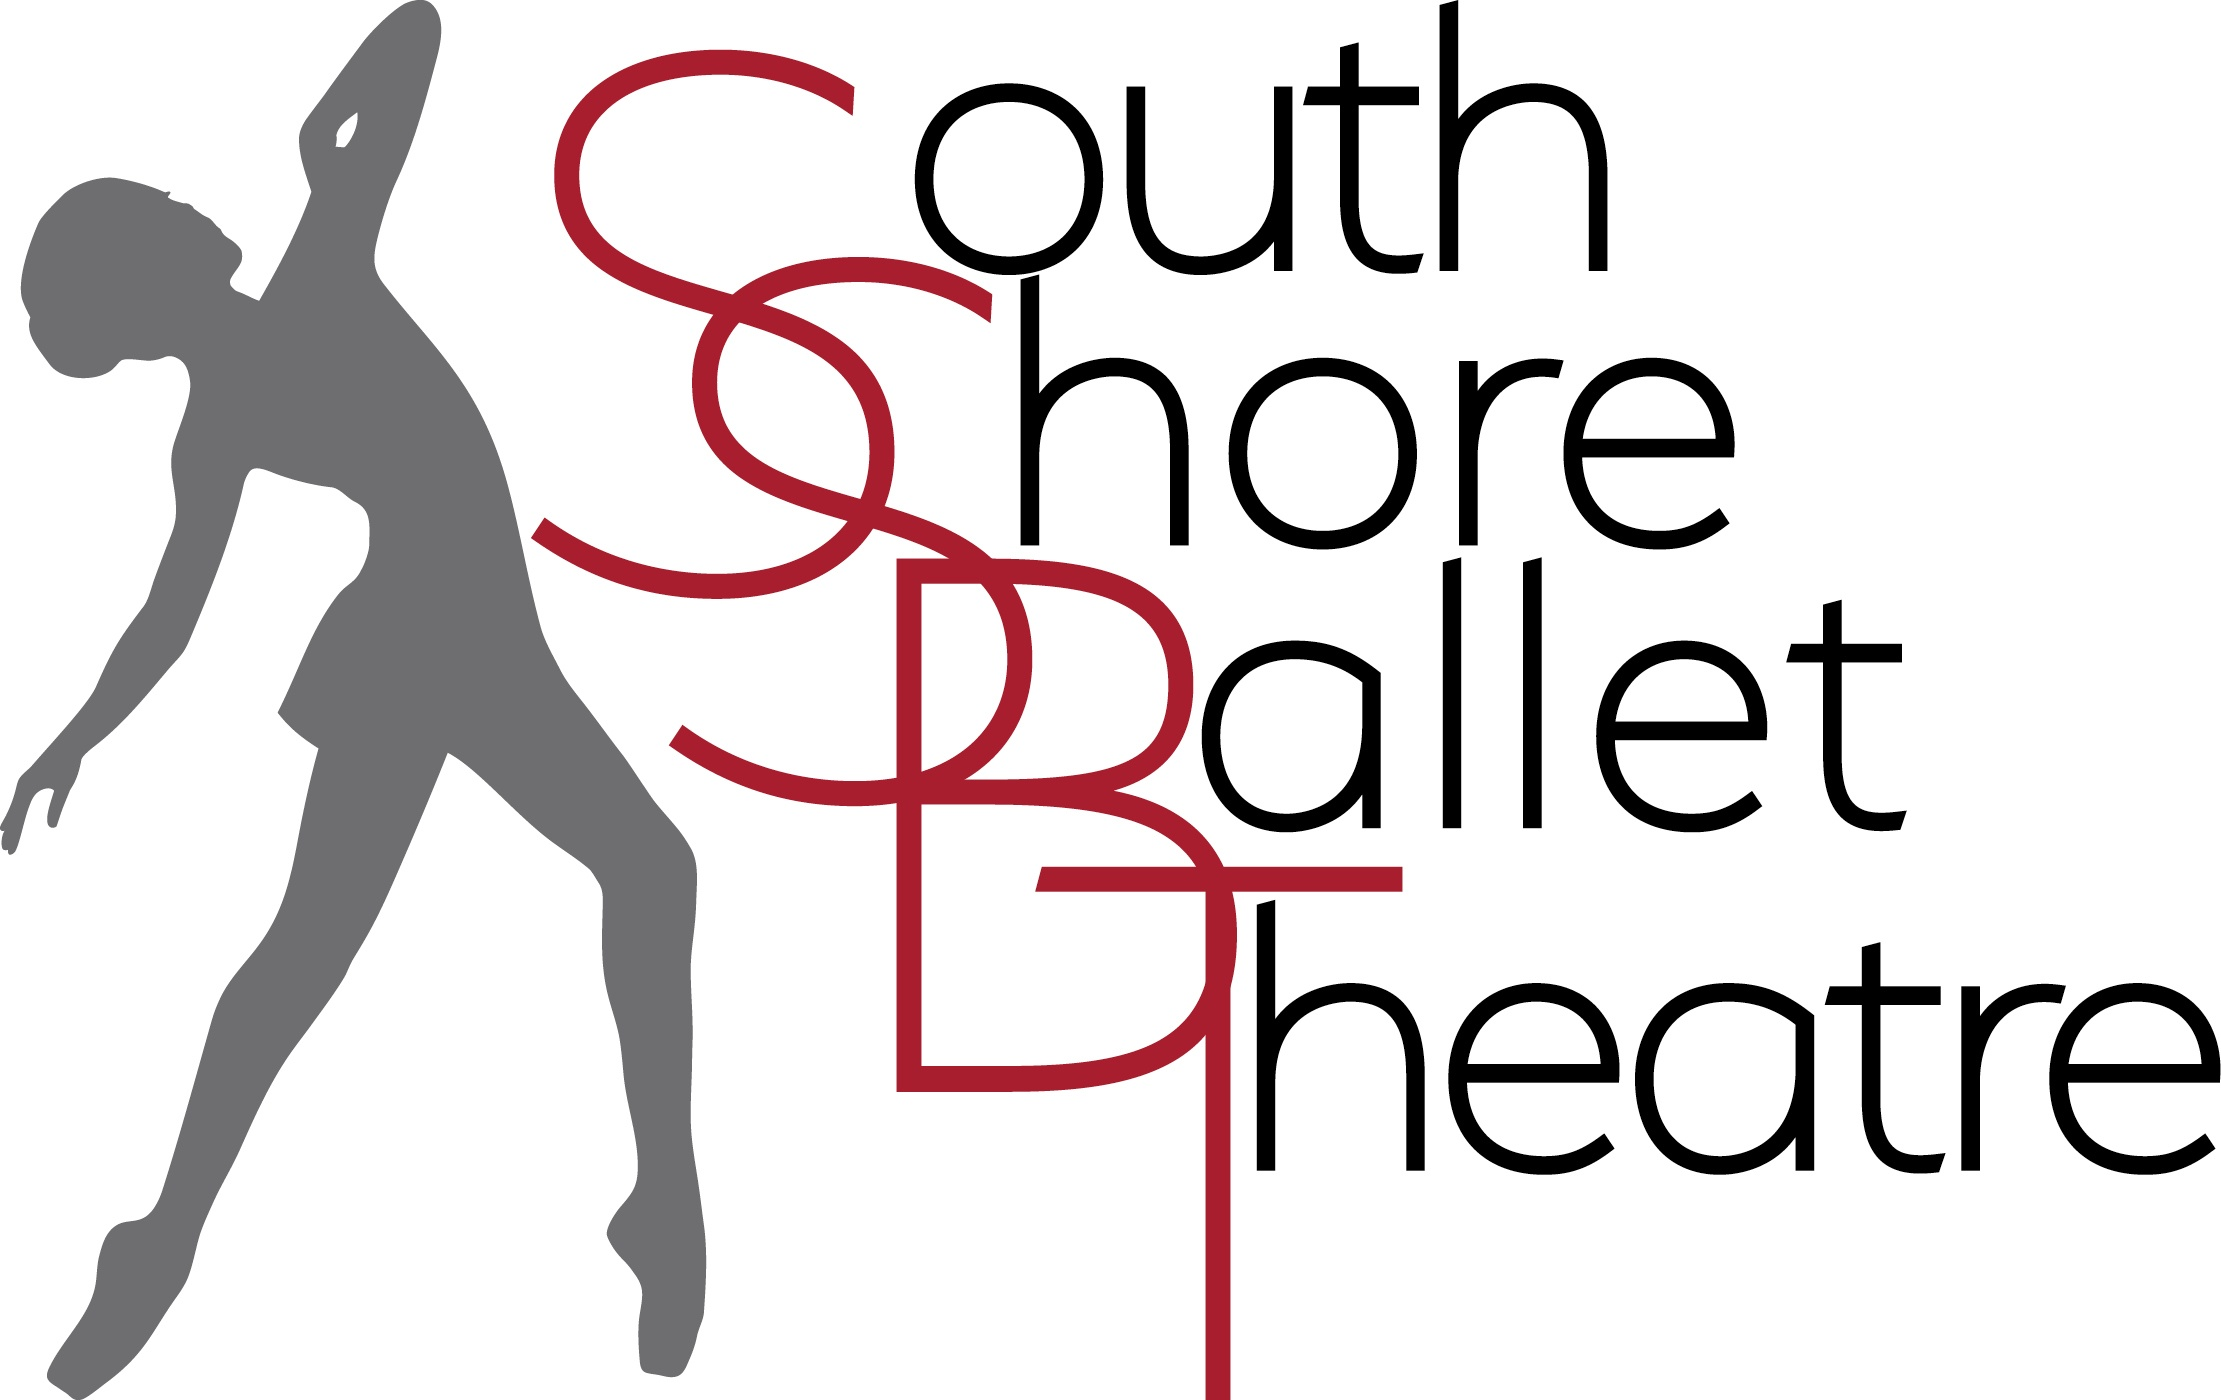 SSBT Logo with Silhouette